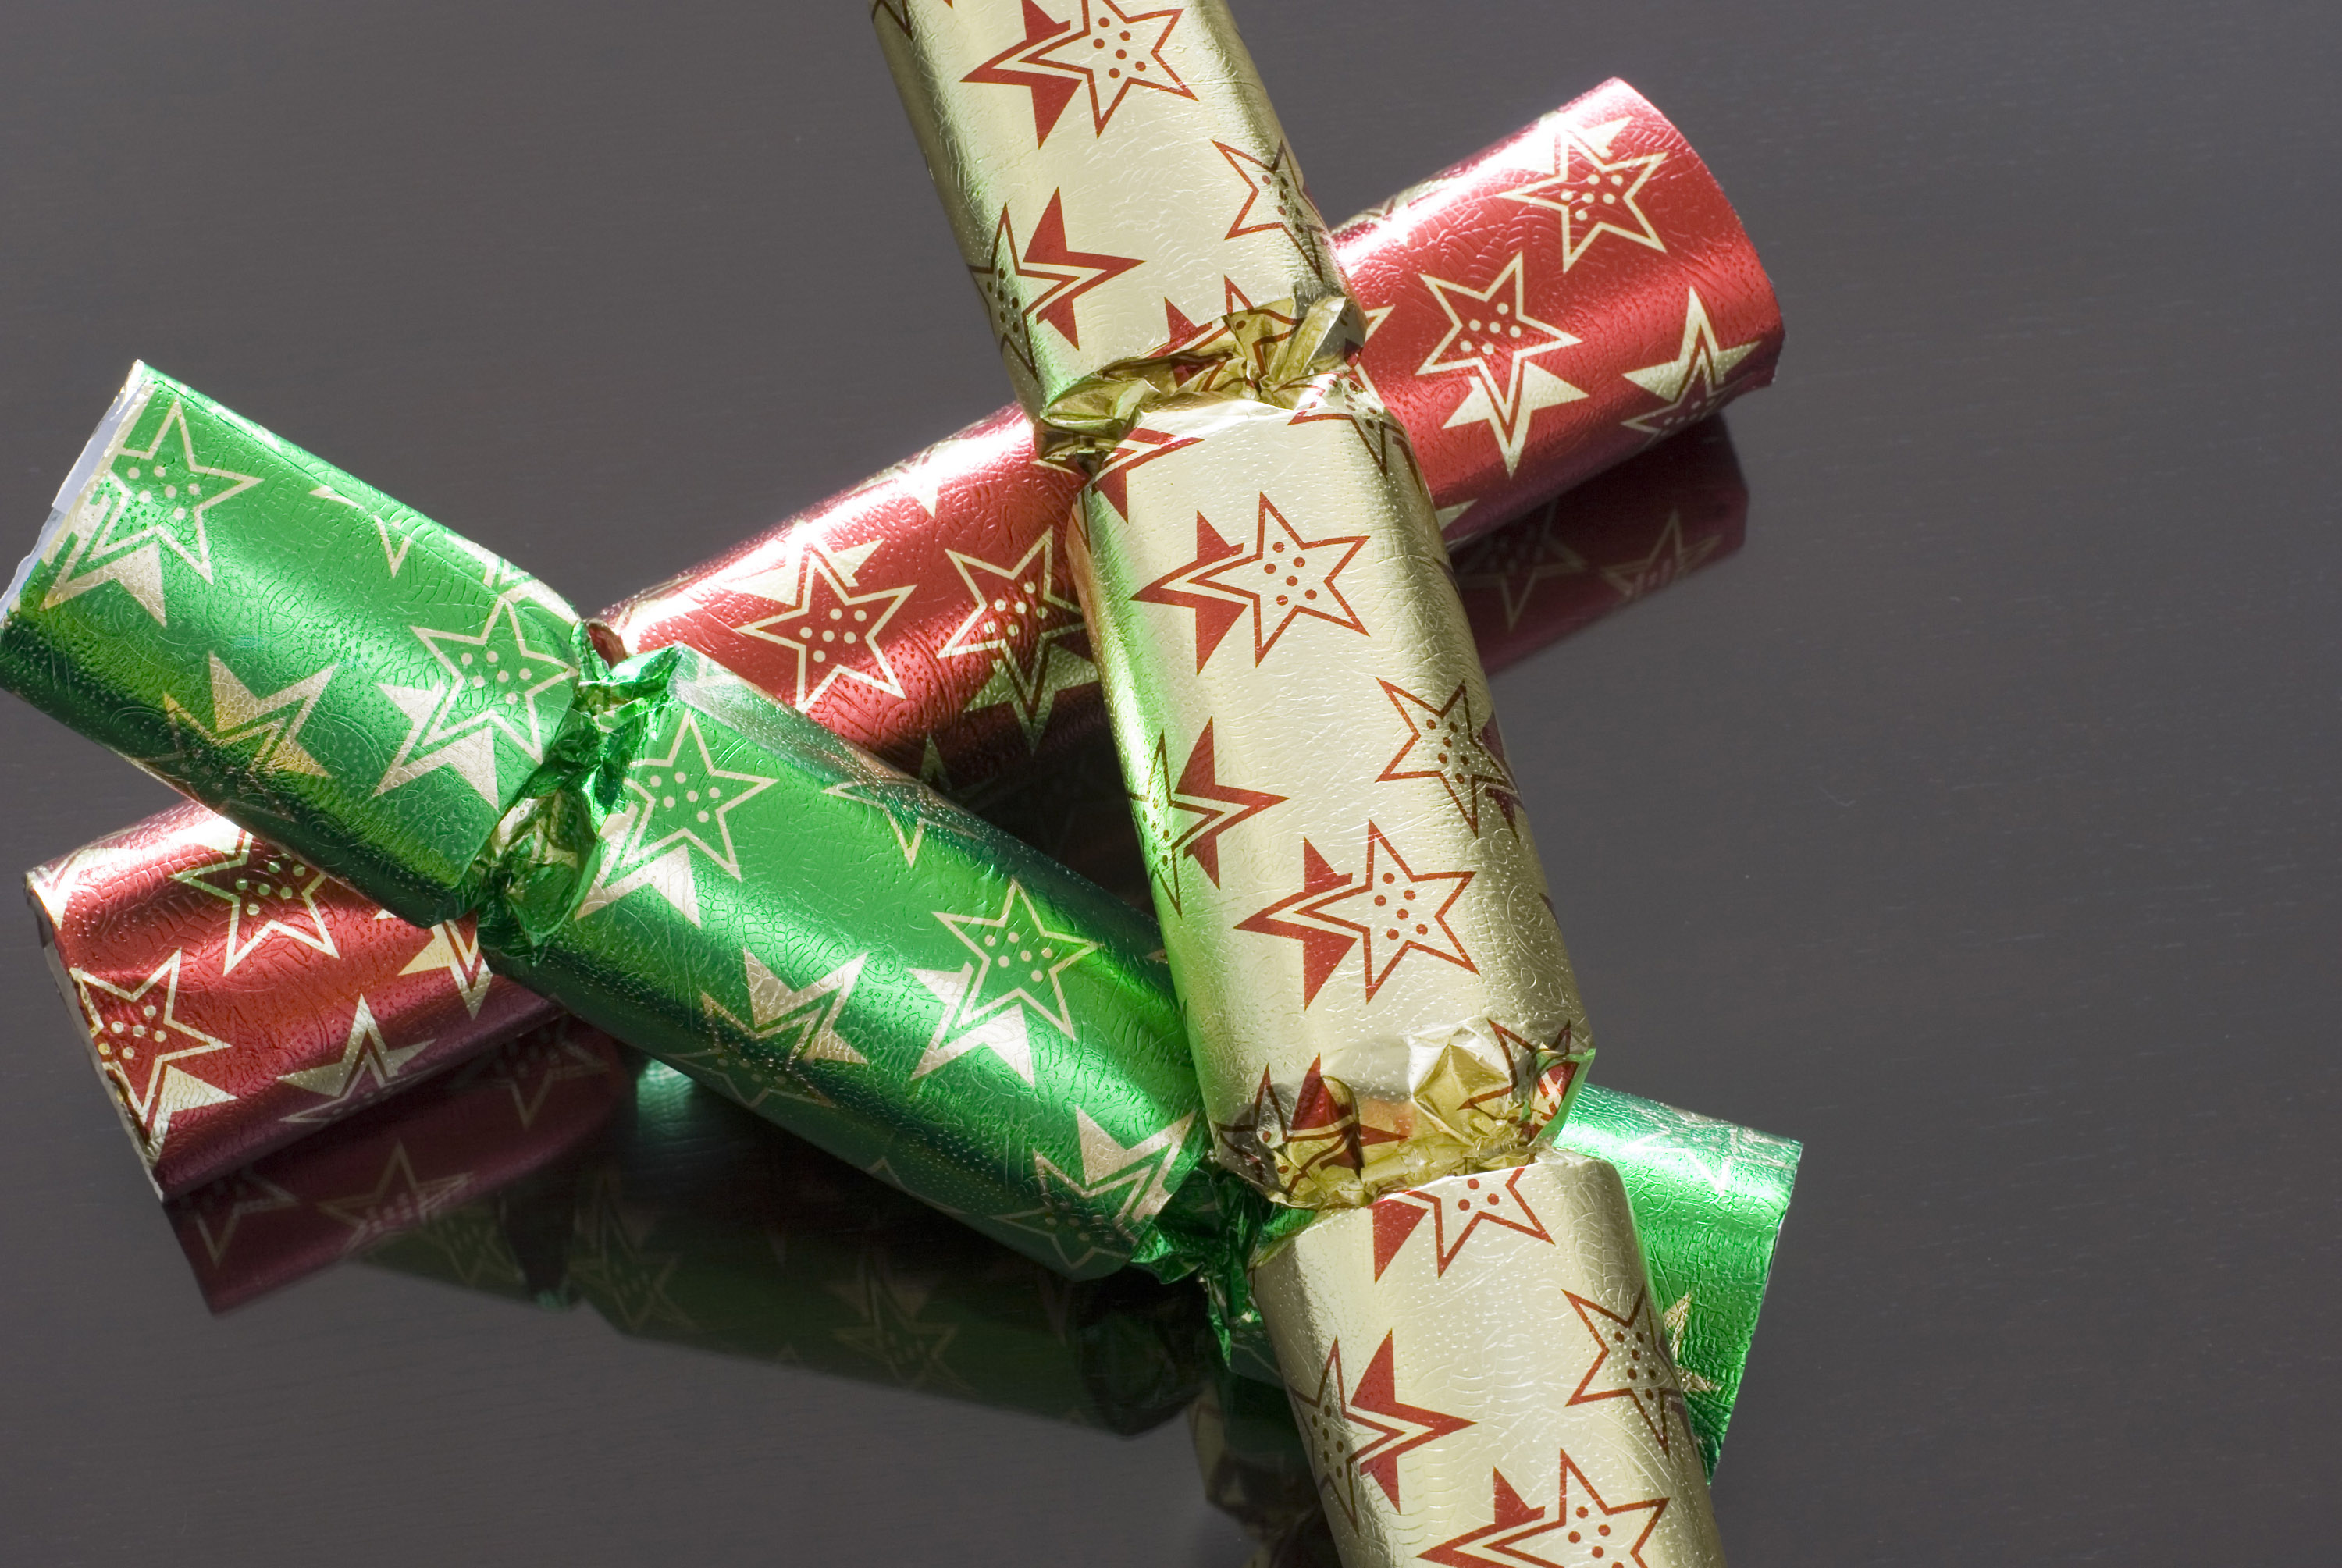 Three different coloured chrismas crackers on a dark polished background